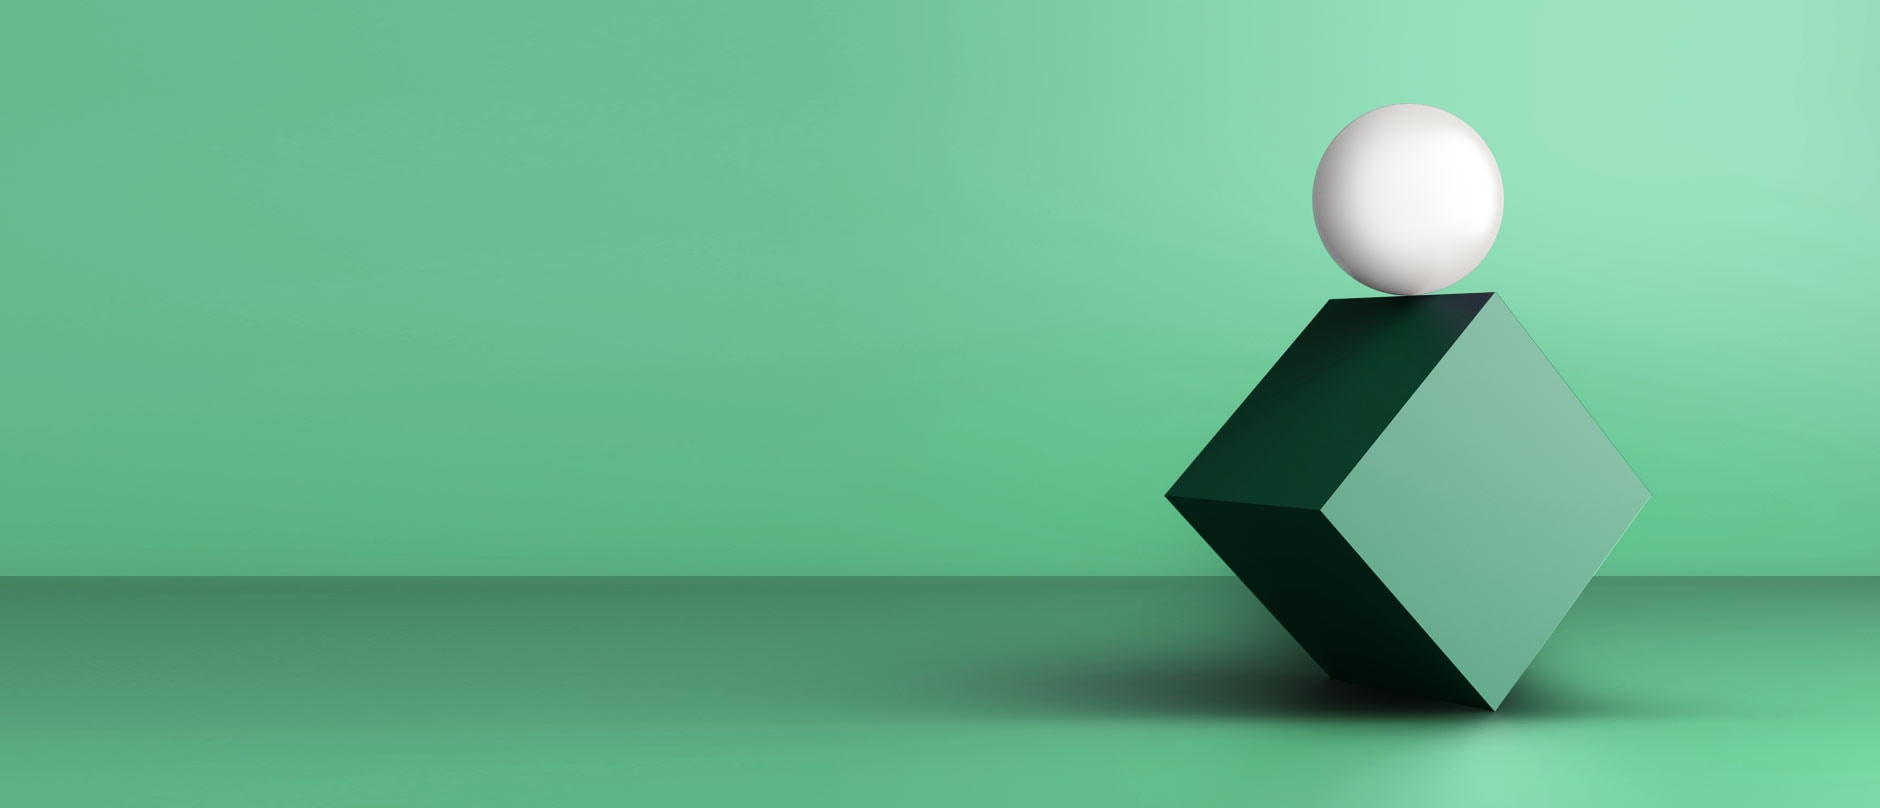 Green cube on its edge with a white sphere on top of it, with green background